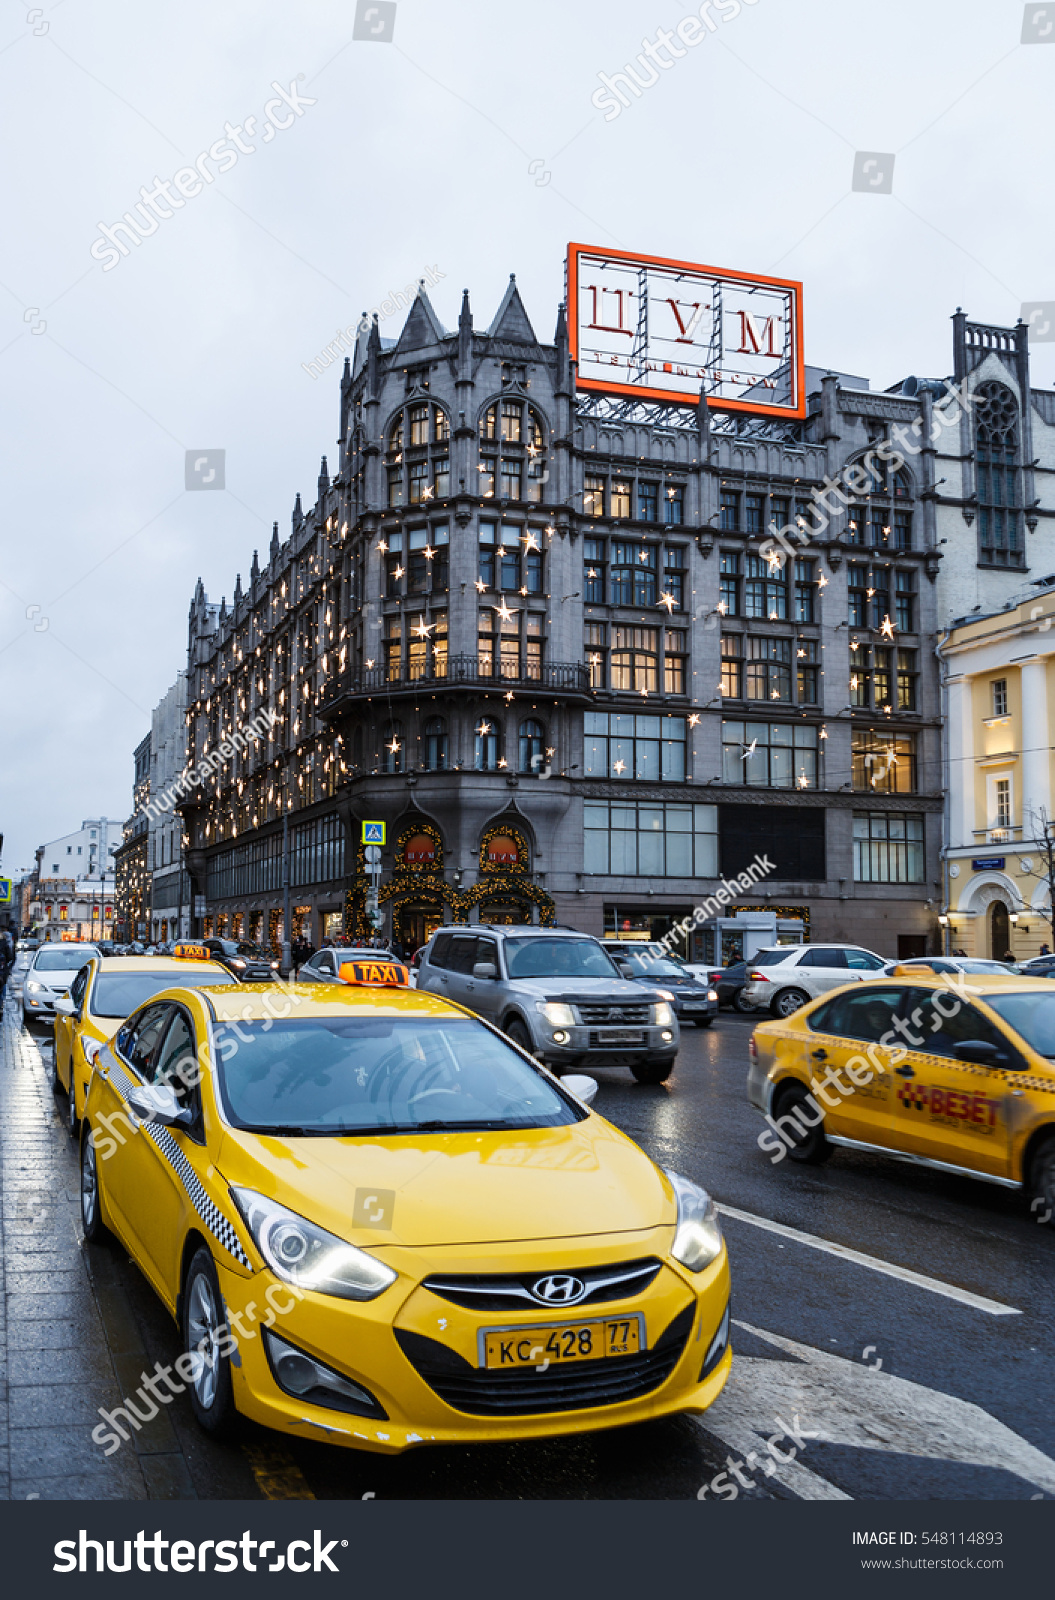 Taxi clothing store